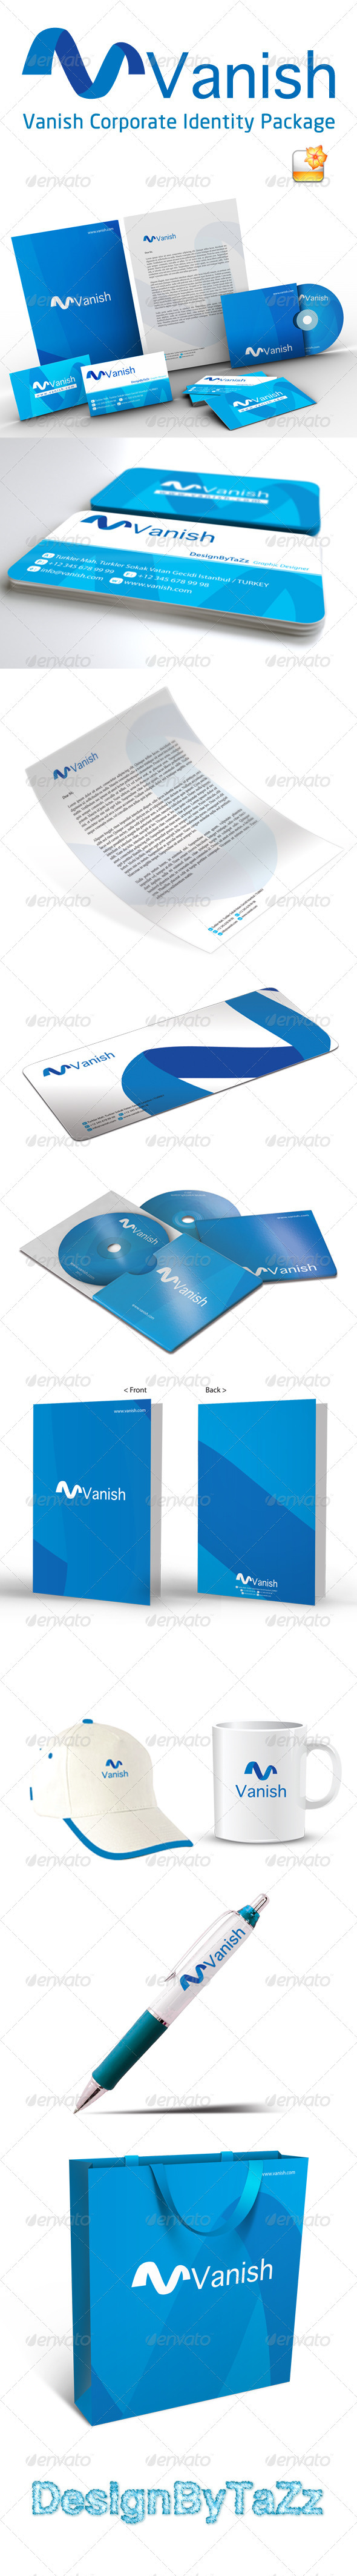 Vanish Corporate Identity Package - Stationery Print Templates